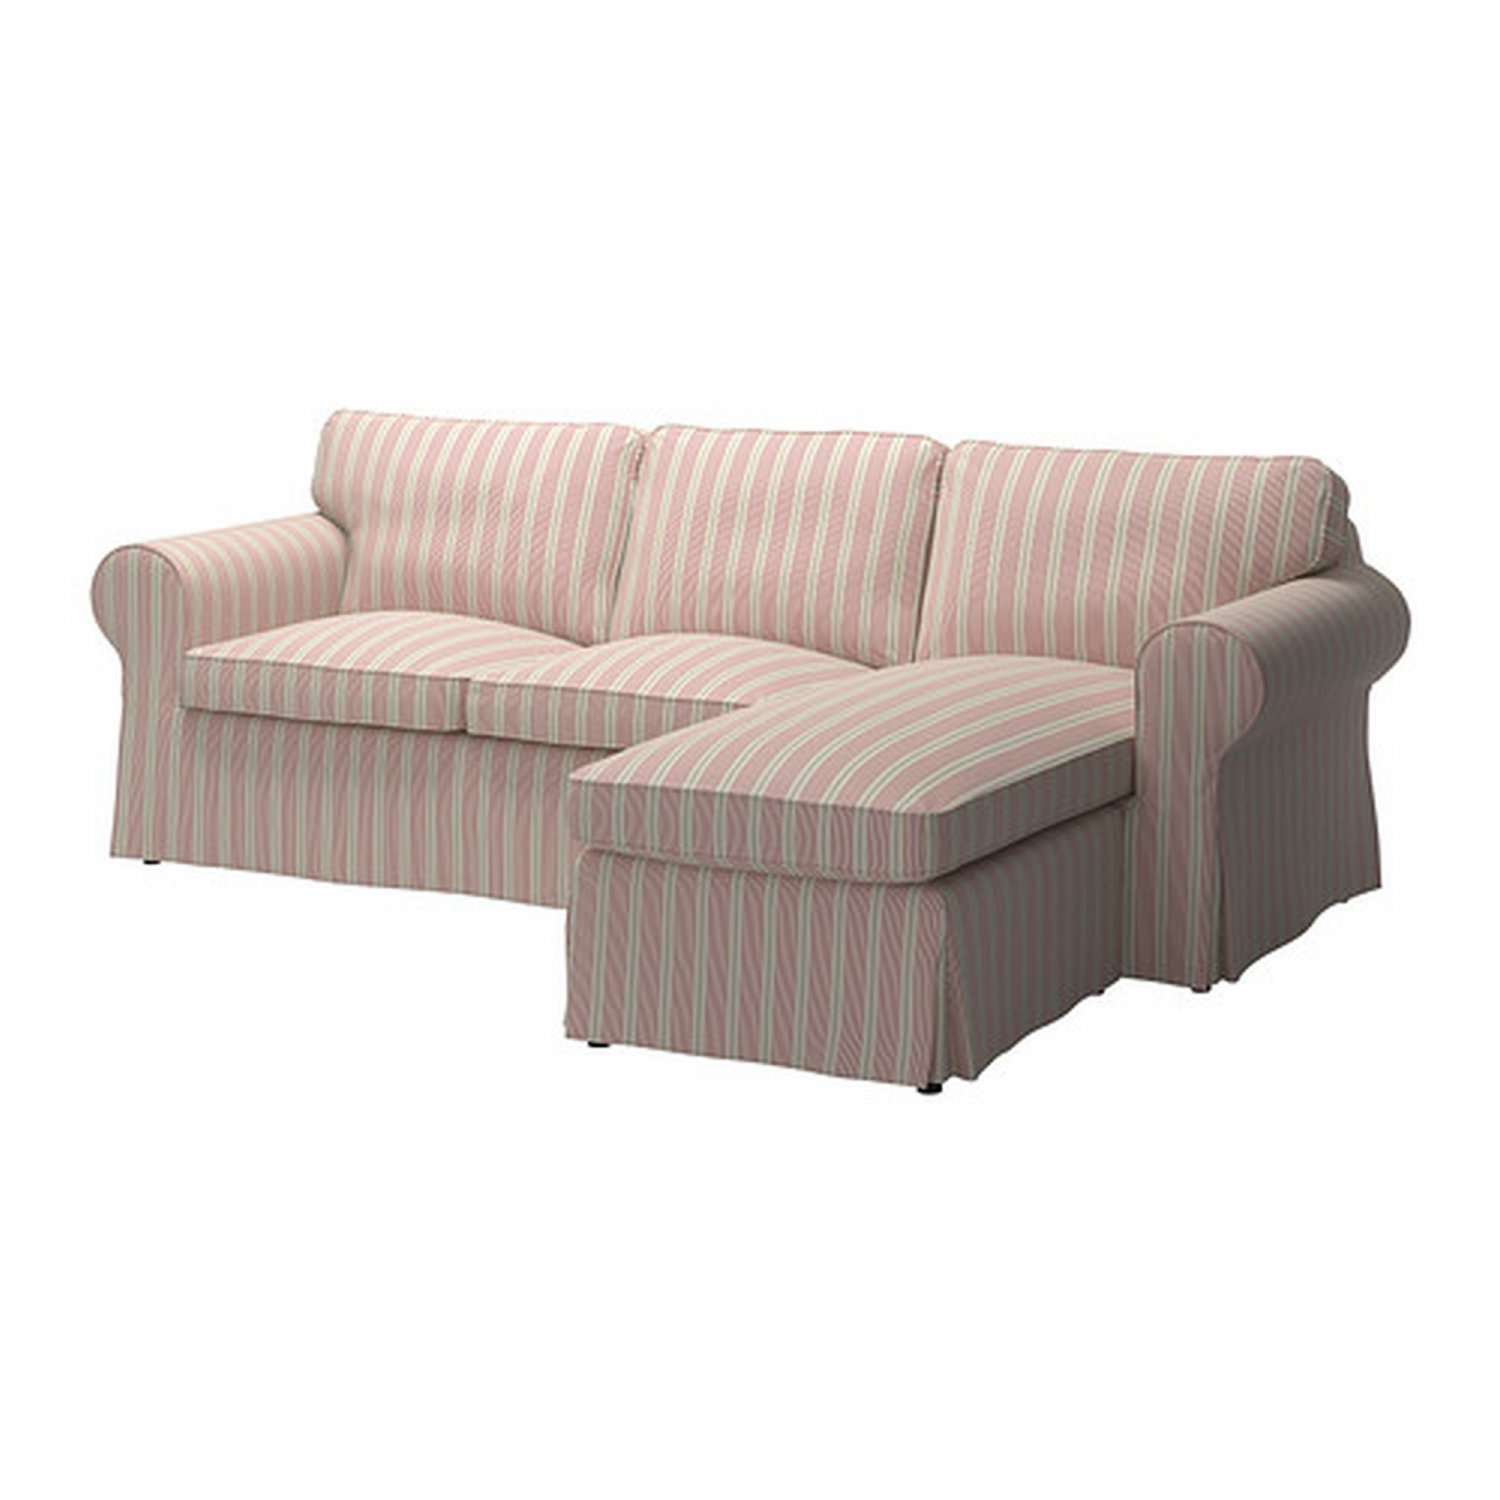 Ikea Ektorp Loveseat W Chaise Lounge Cover 3 Seat